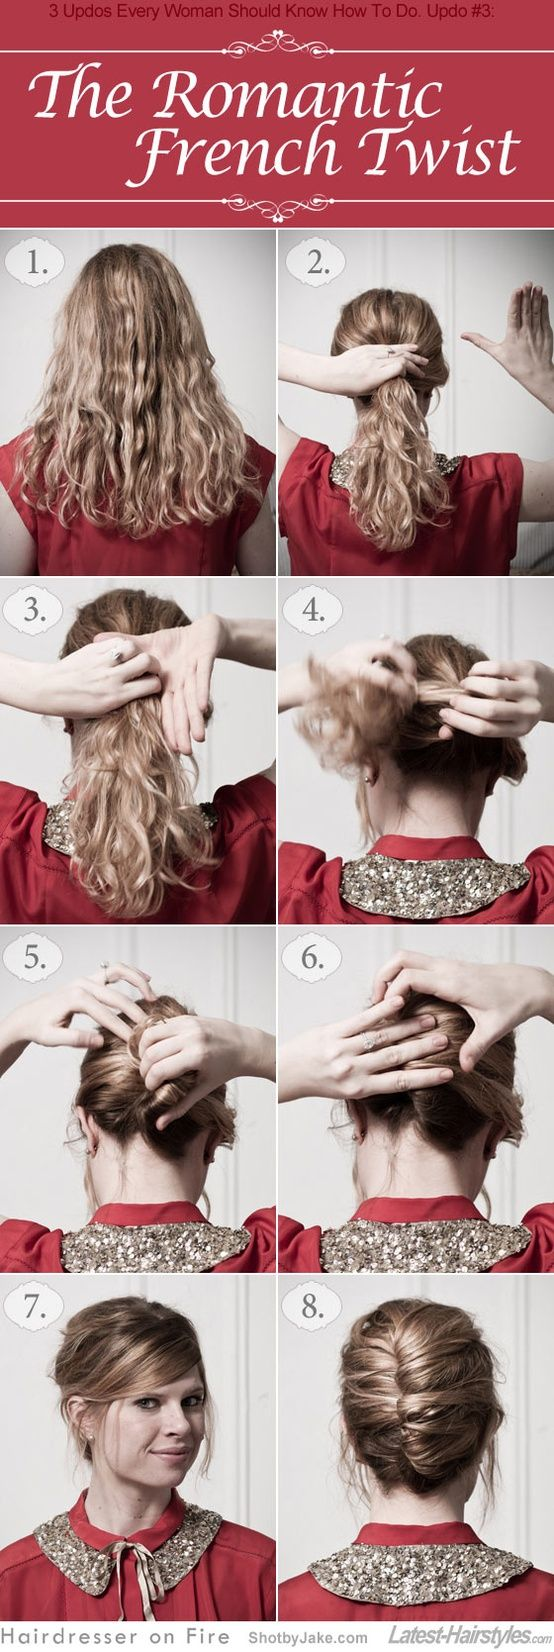 French twist, I've been wanting to learn how to do this!